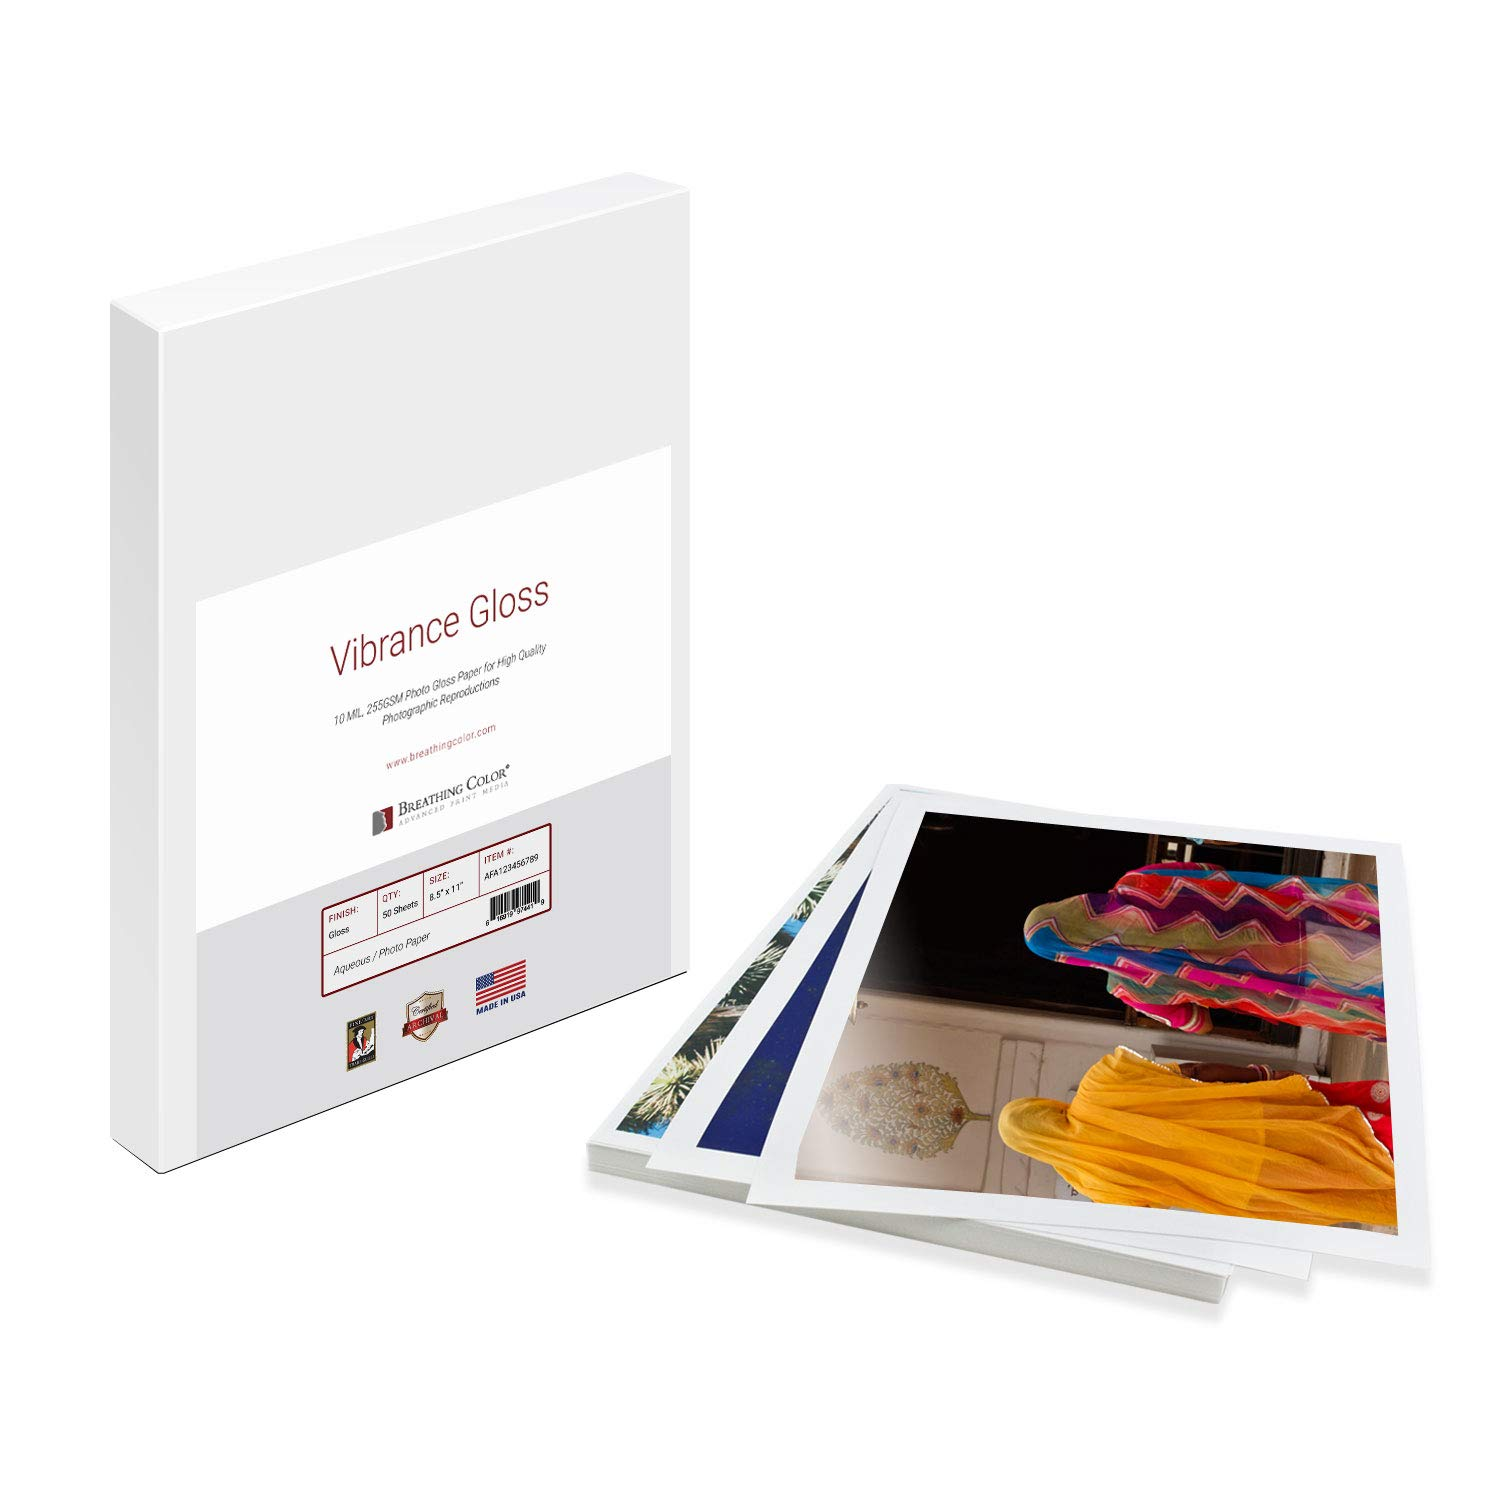 Vibrance Gloss Photo Printer Paper 10 mil 255 gsm Glossy Finish Premium Photo Paper Sheets 17 inches x 22 inches 50 sheets Works with All Inkjet Printers Including Professional Makes and Models